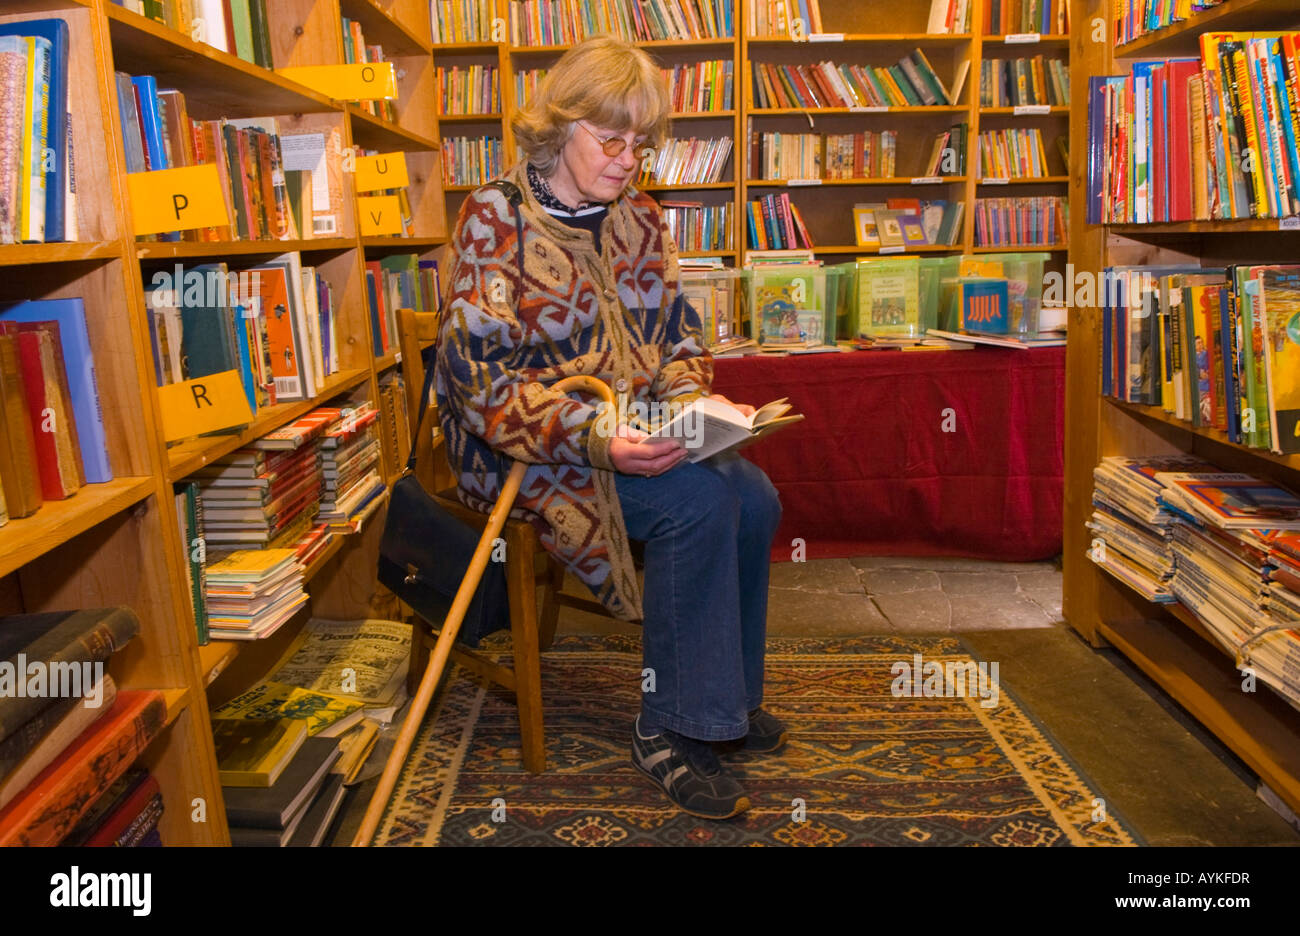 Woman browsing book at Richard Booths Bookshop Hay on Wye Powys Wales UK EU the World's largest secondhand bookshop - Stock Image